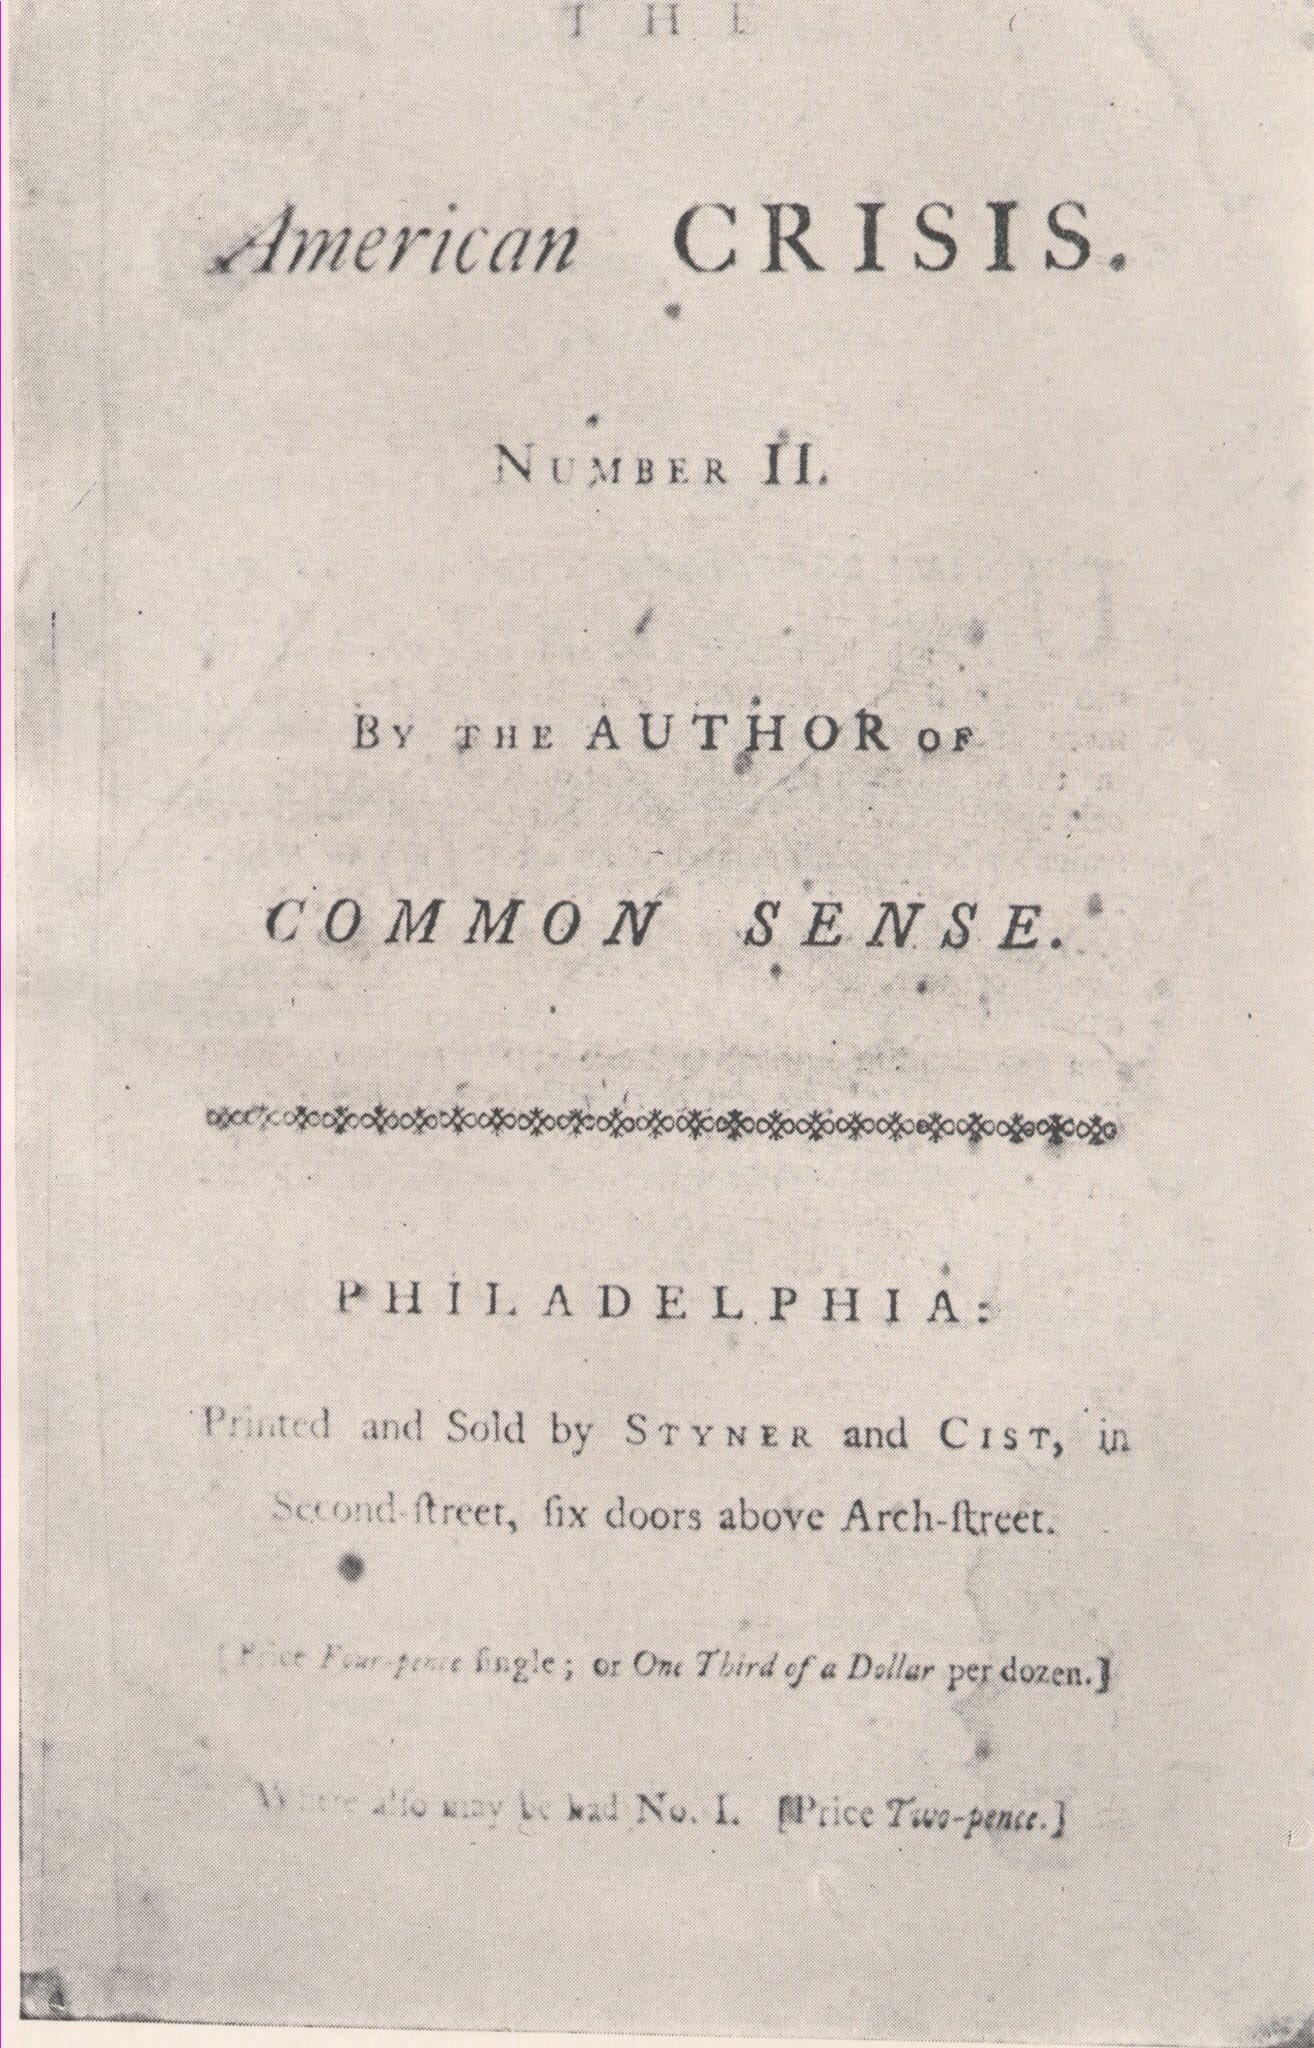 In 1776, Paine published The American Crisis pamphlet. Barack Obama quoted from it in his first inauguration speech. #DayofFacts https://t.co/1So34AhDBq